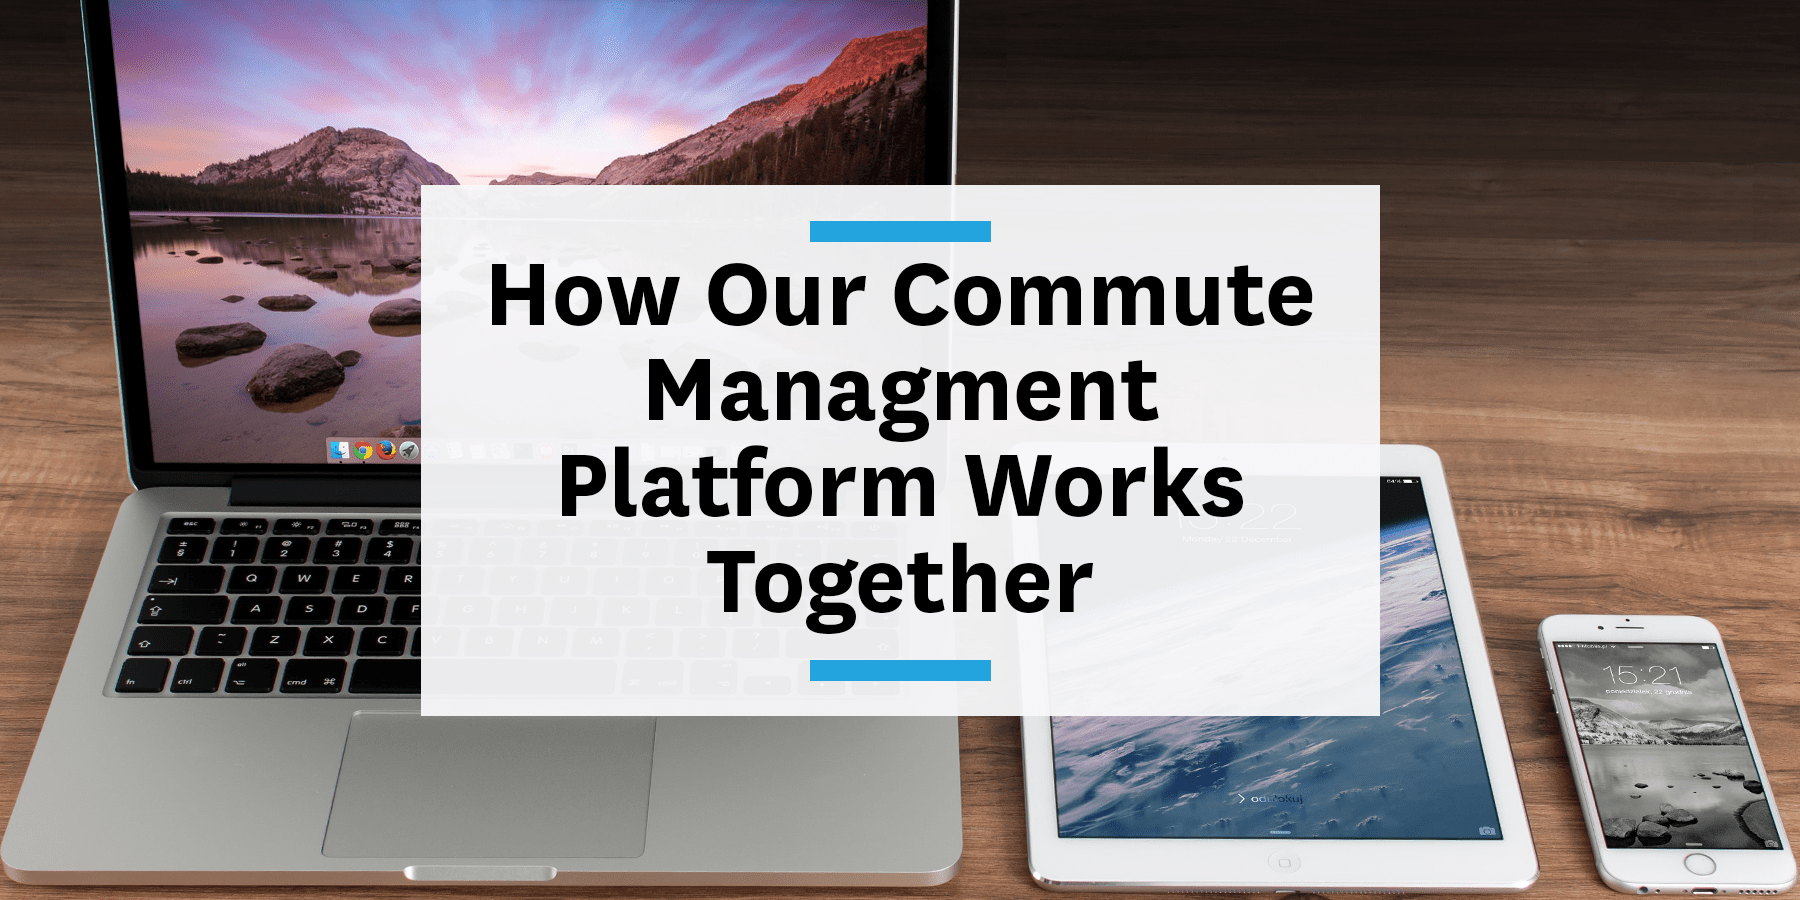 Feature image for how our commute management platform works together